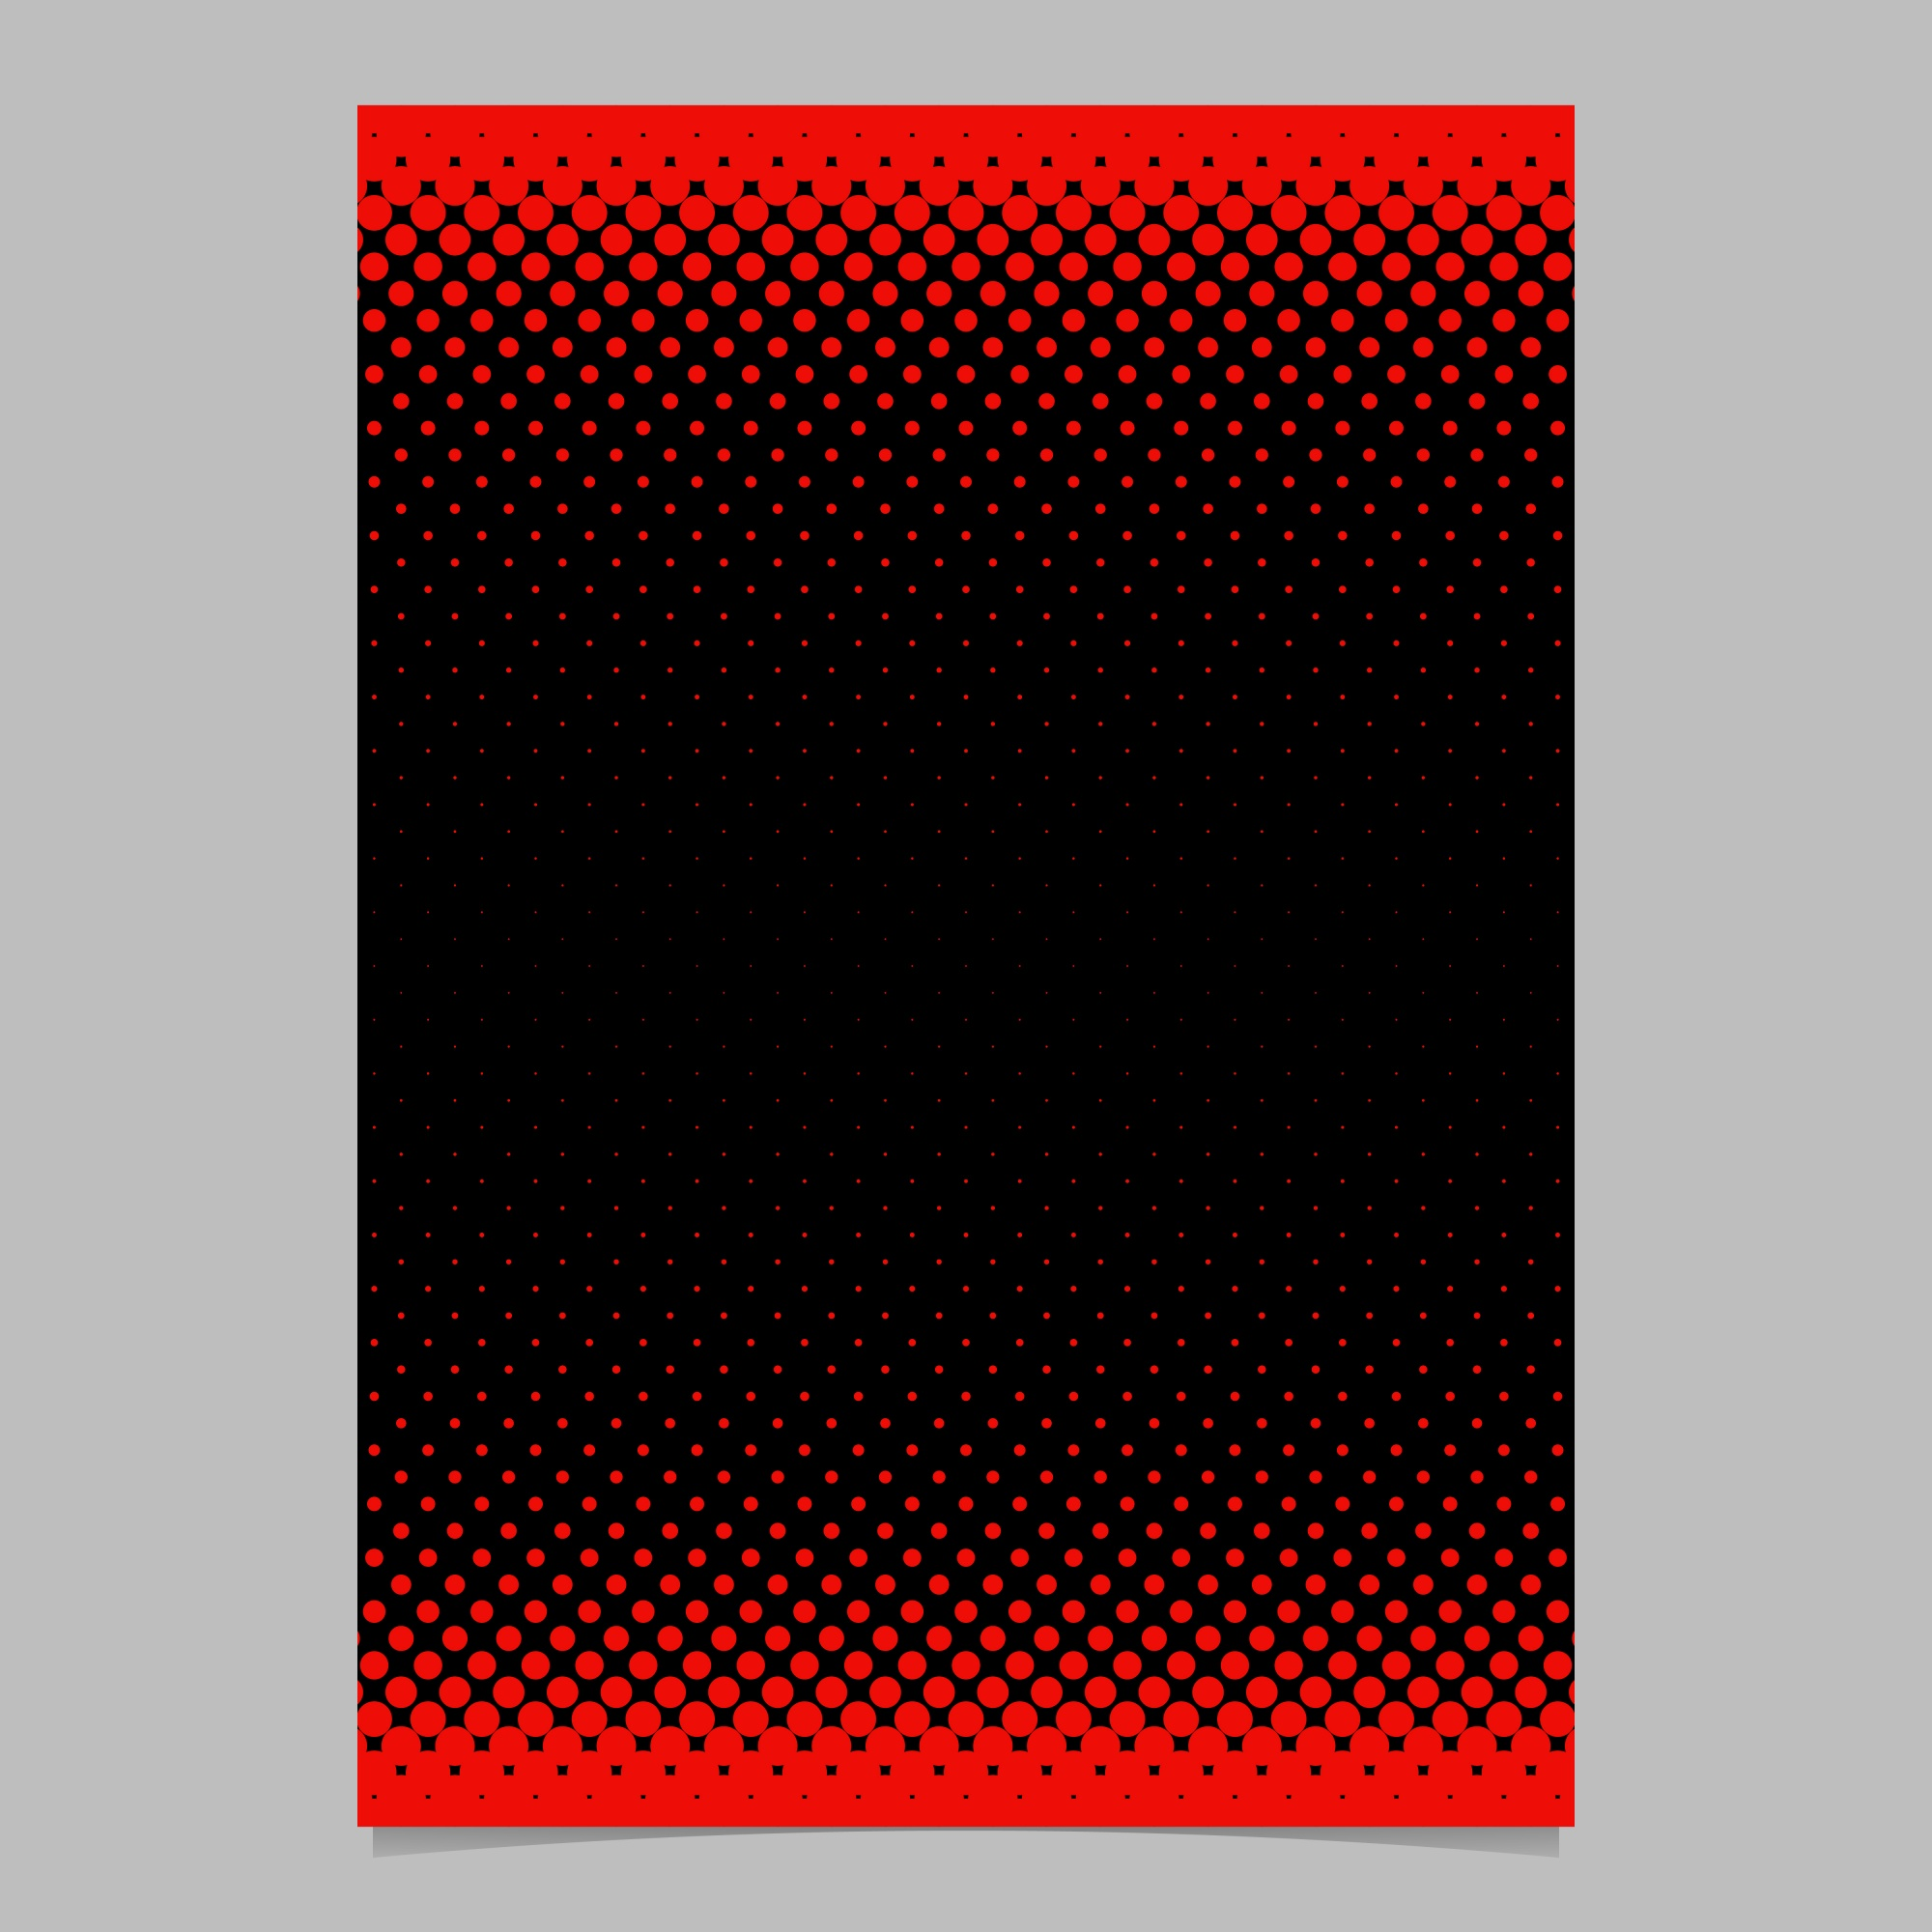 Color abstract halftone circle pattern card template - vector stationery background graphic design with dot pattern